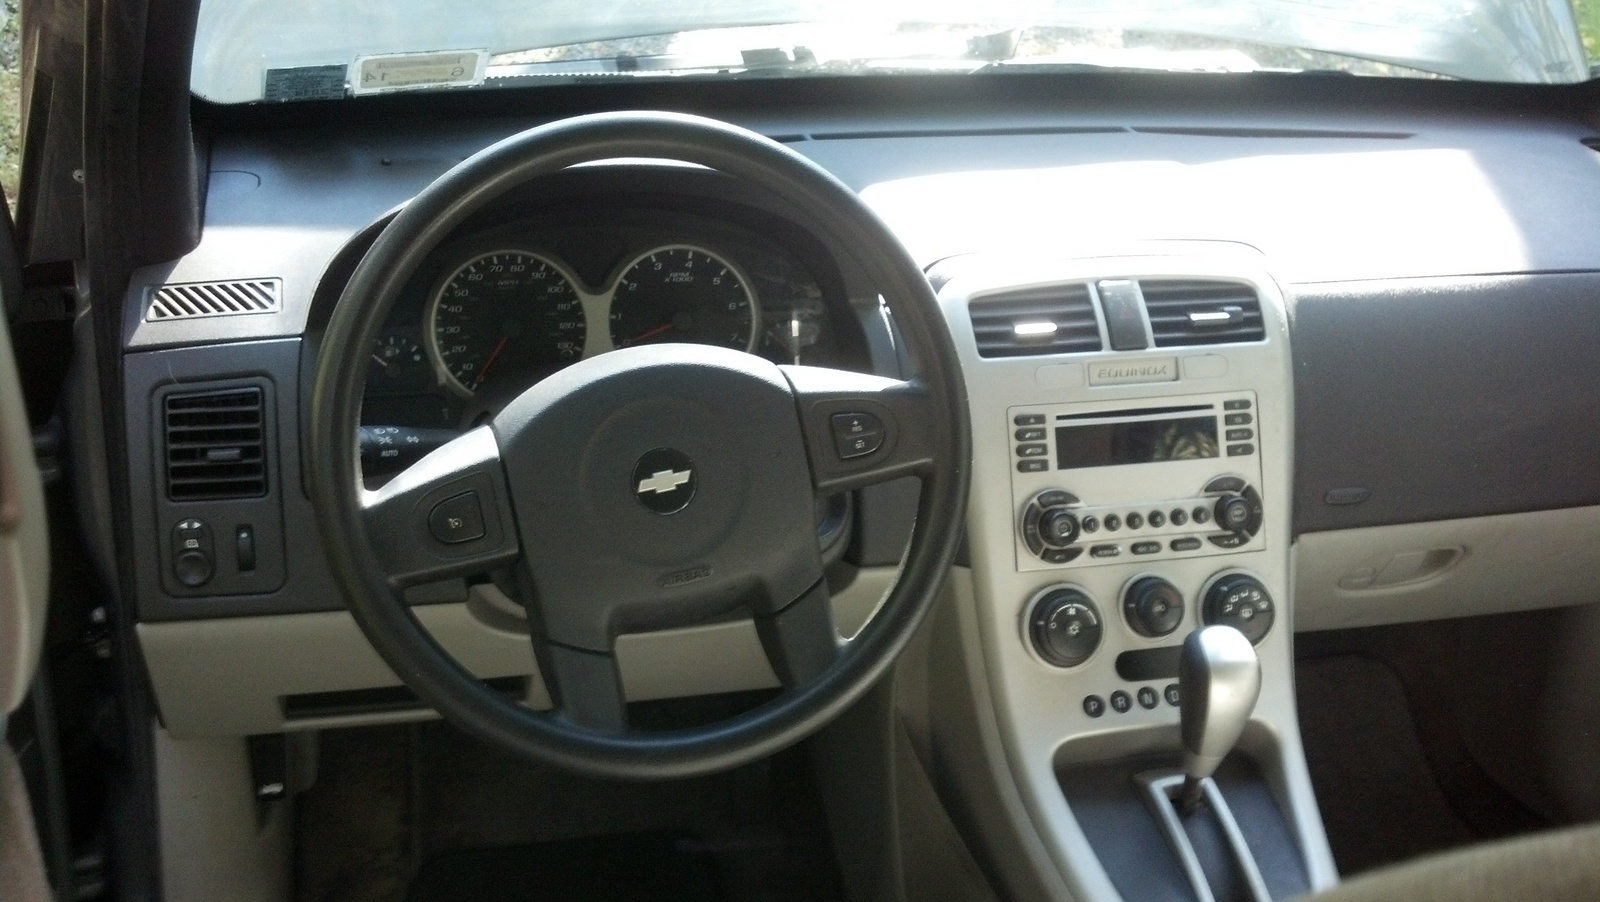 2006 Equinox Interior Gallery